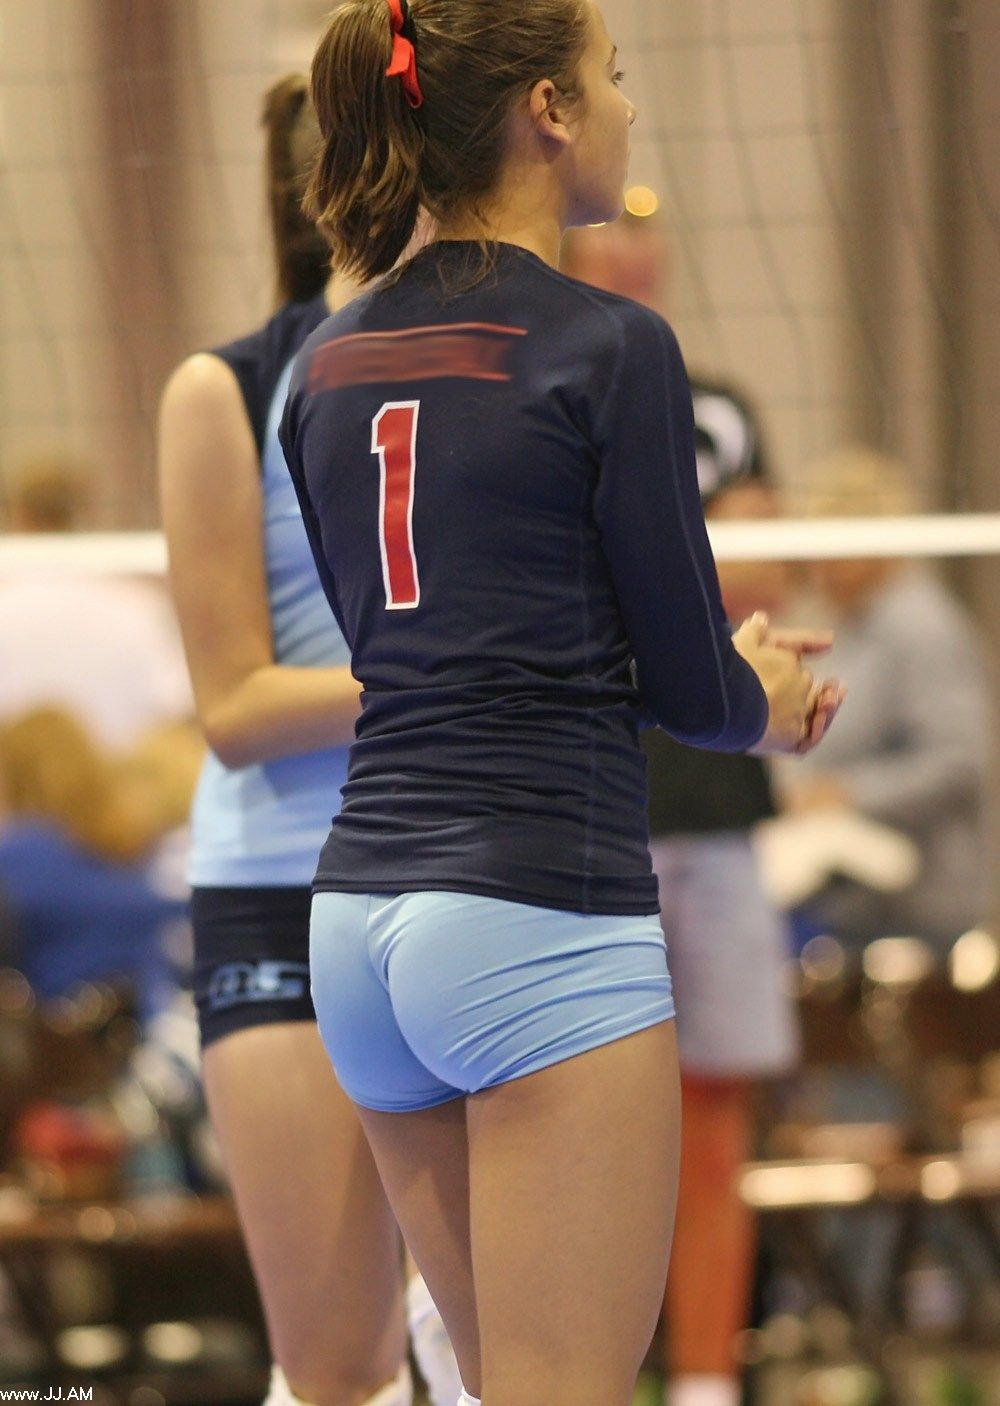 Image Result For Best Young Girls Ass